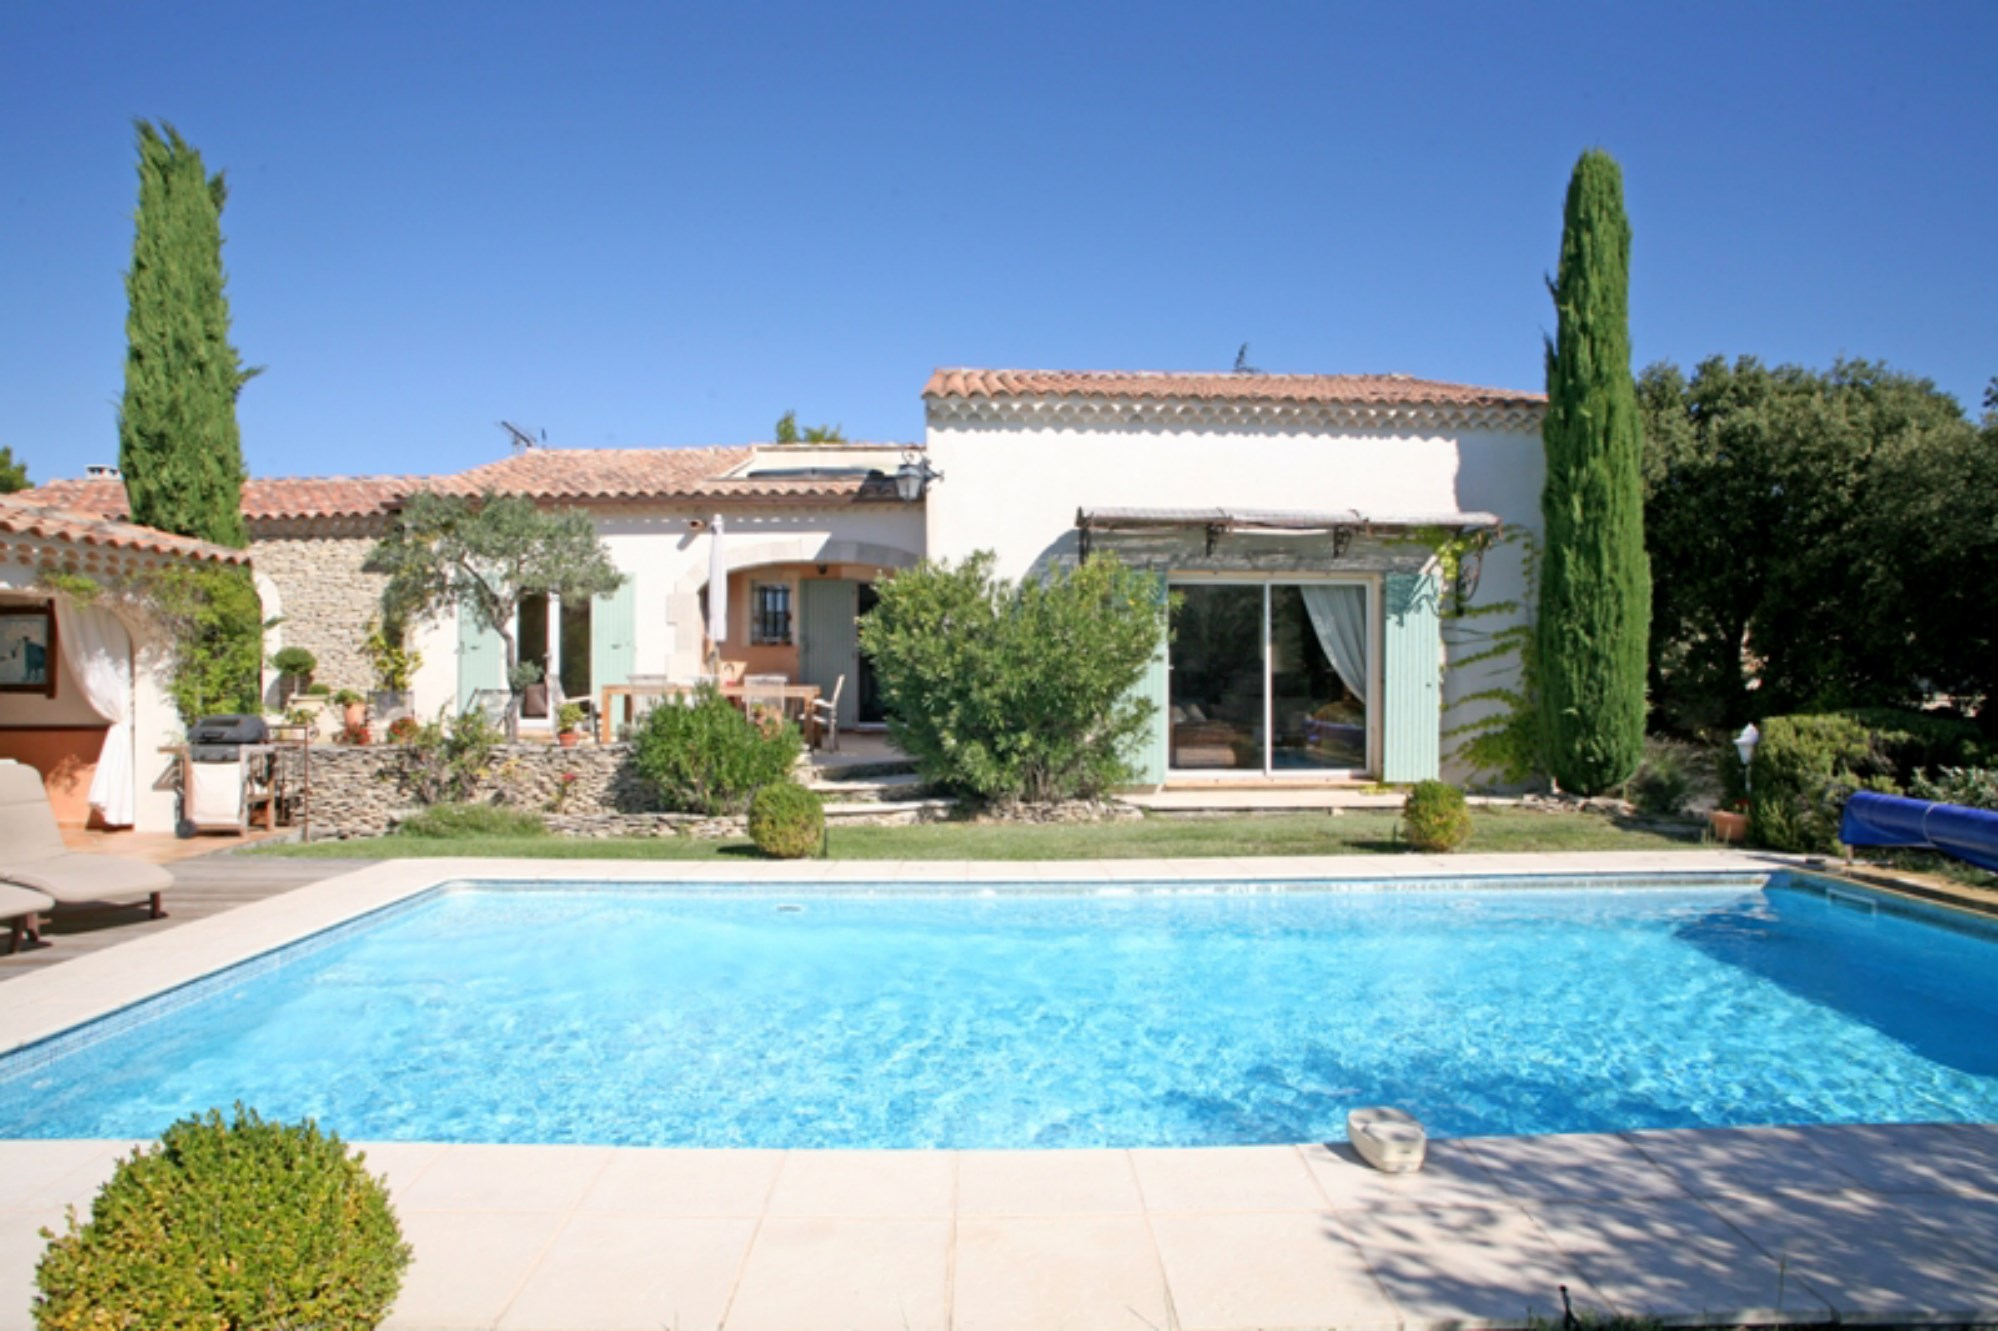 Ventes a proximit de gordes en luberon vendre jolie for Photo de jardin de maison